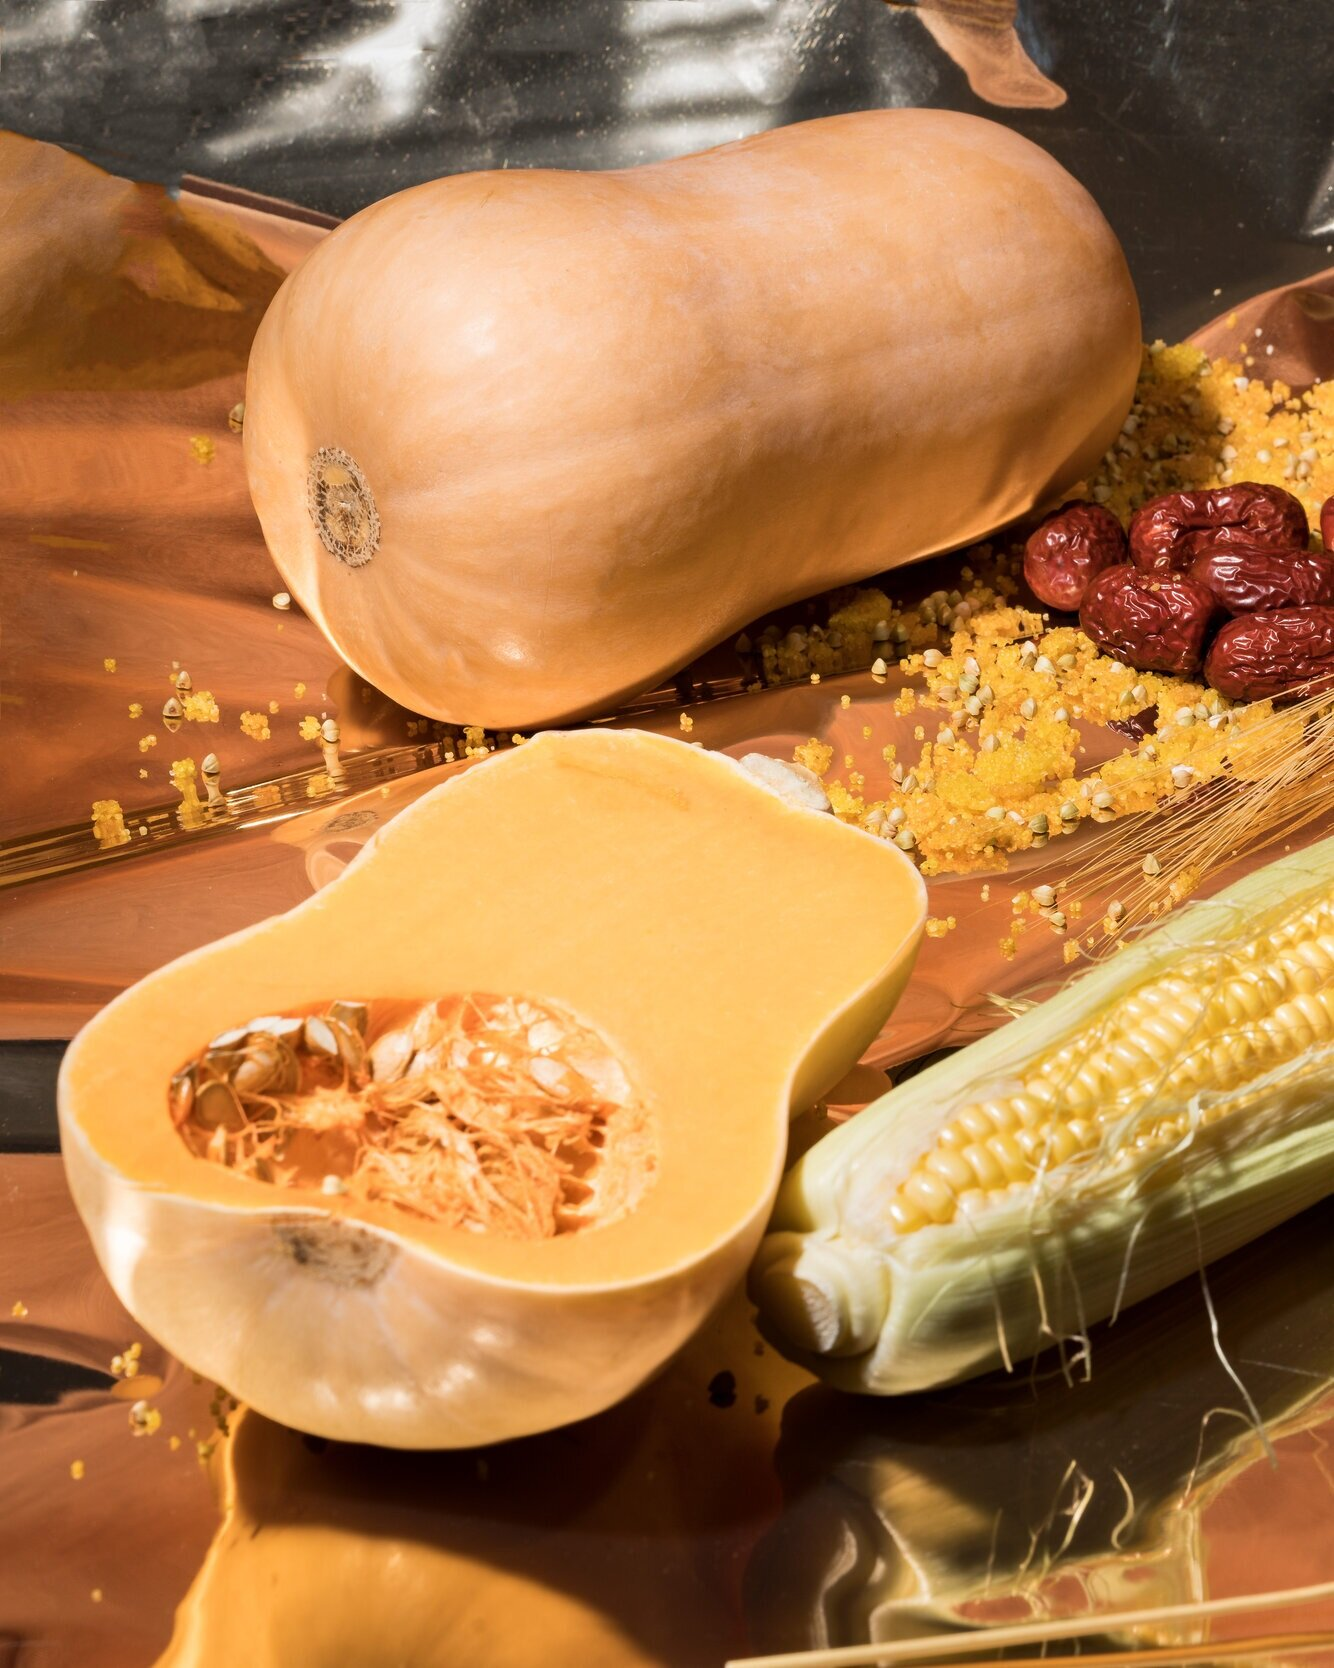 taste the season  Roasted to bring out natural sweetness, butternut squash adds a creamy richness to a leafy salad that's elevated by the crunchiness of toasted grains. Red dates—also a symbol of autumn—are the base for the honeyed dressing.